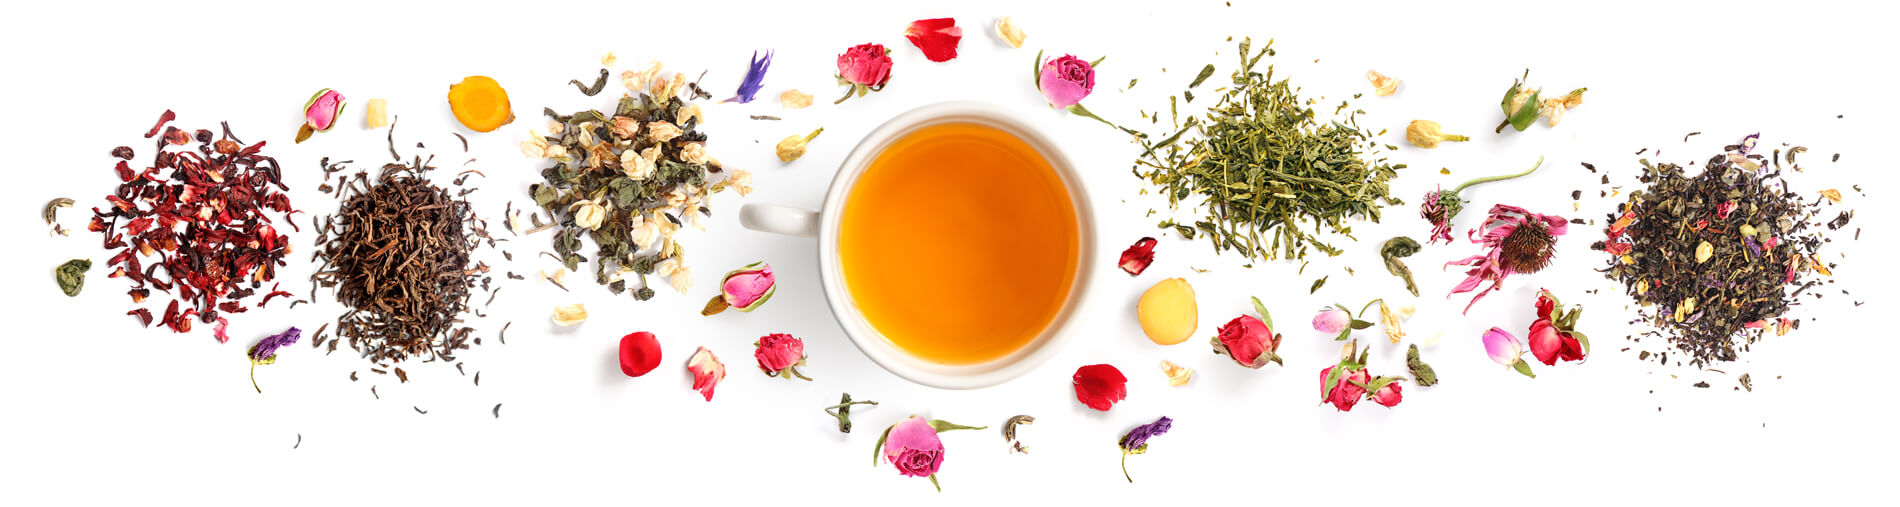 Creative layout made of cup of tea, green tea, black tea, fruit and herbal, tea, turmeric, ginger on white background. Flat lay. Food concept.